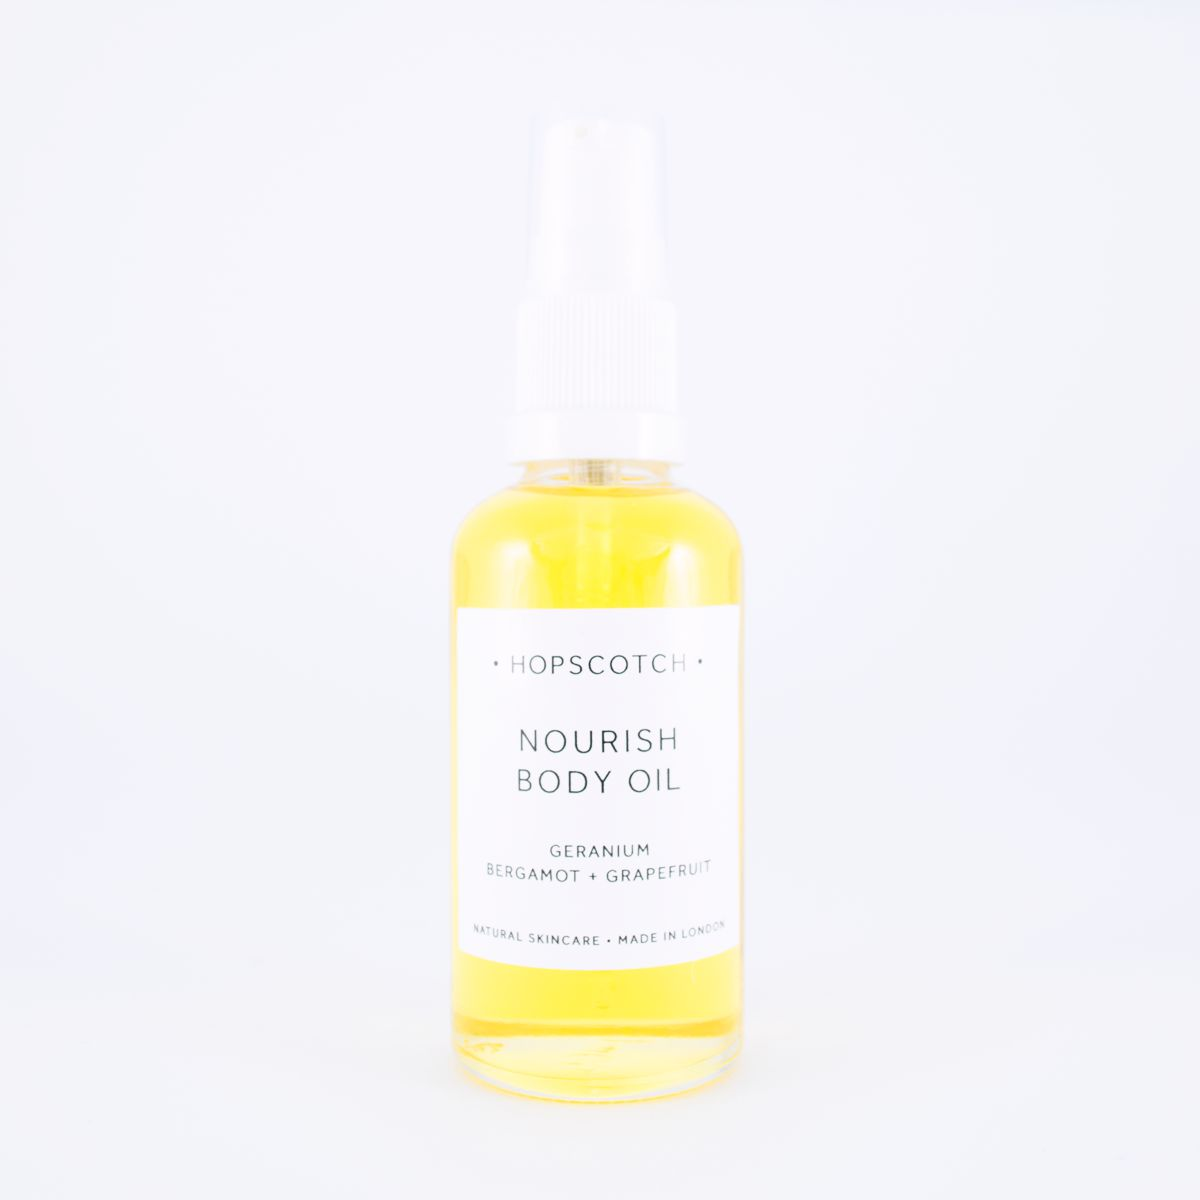 hopscotch nourish body oil